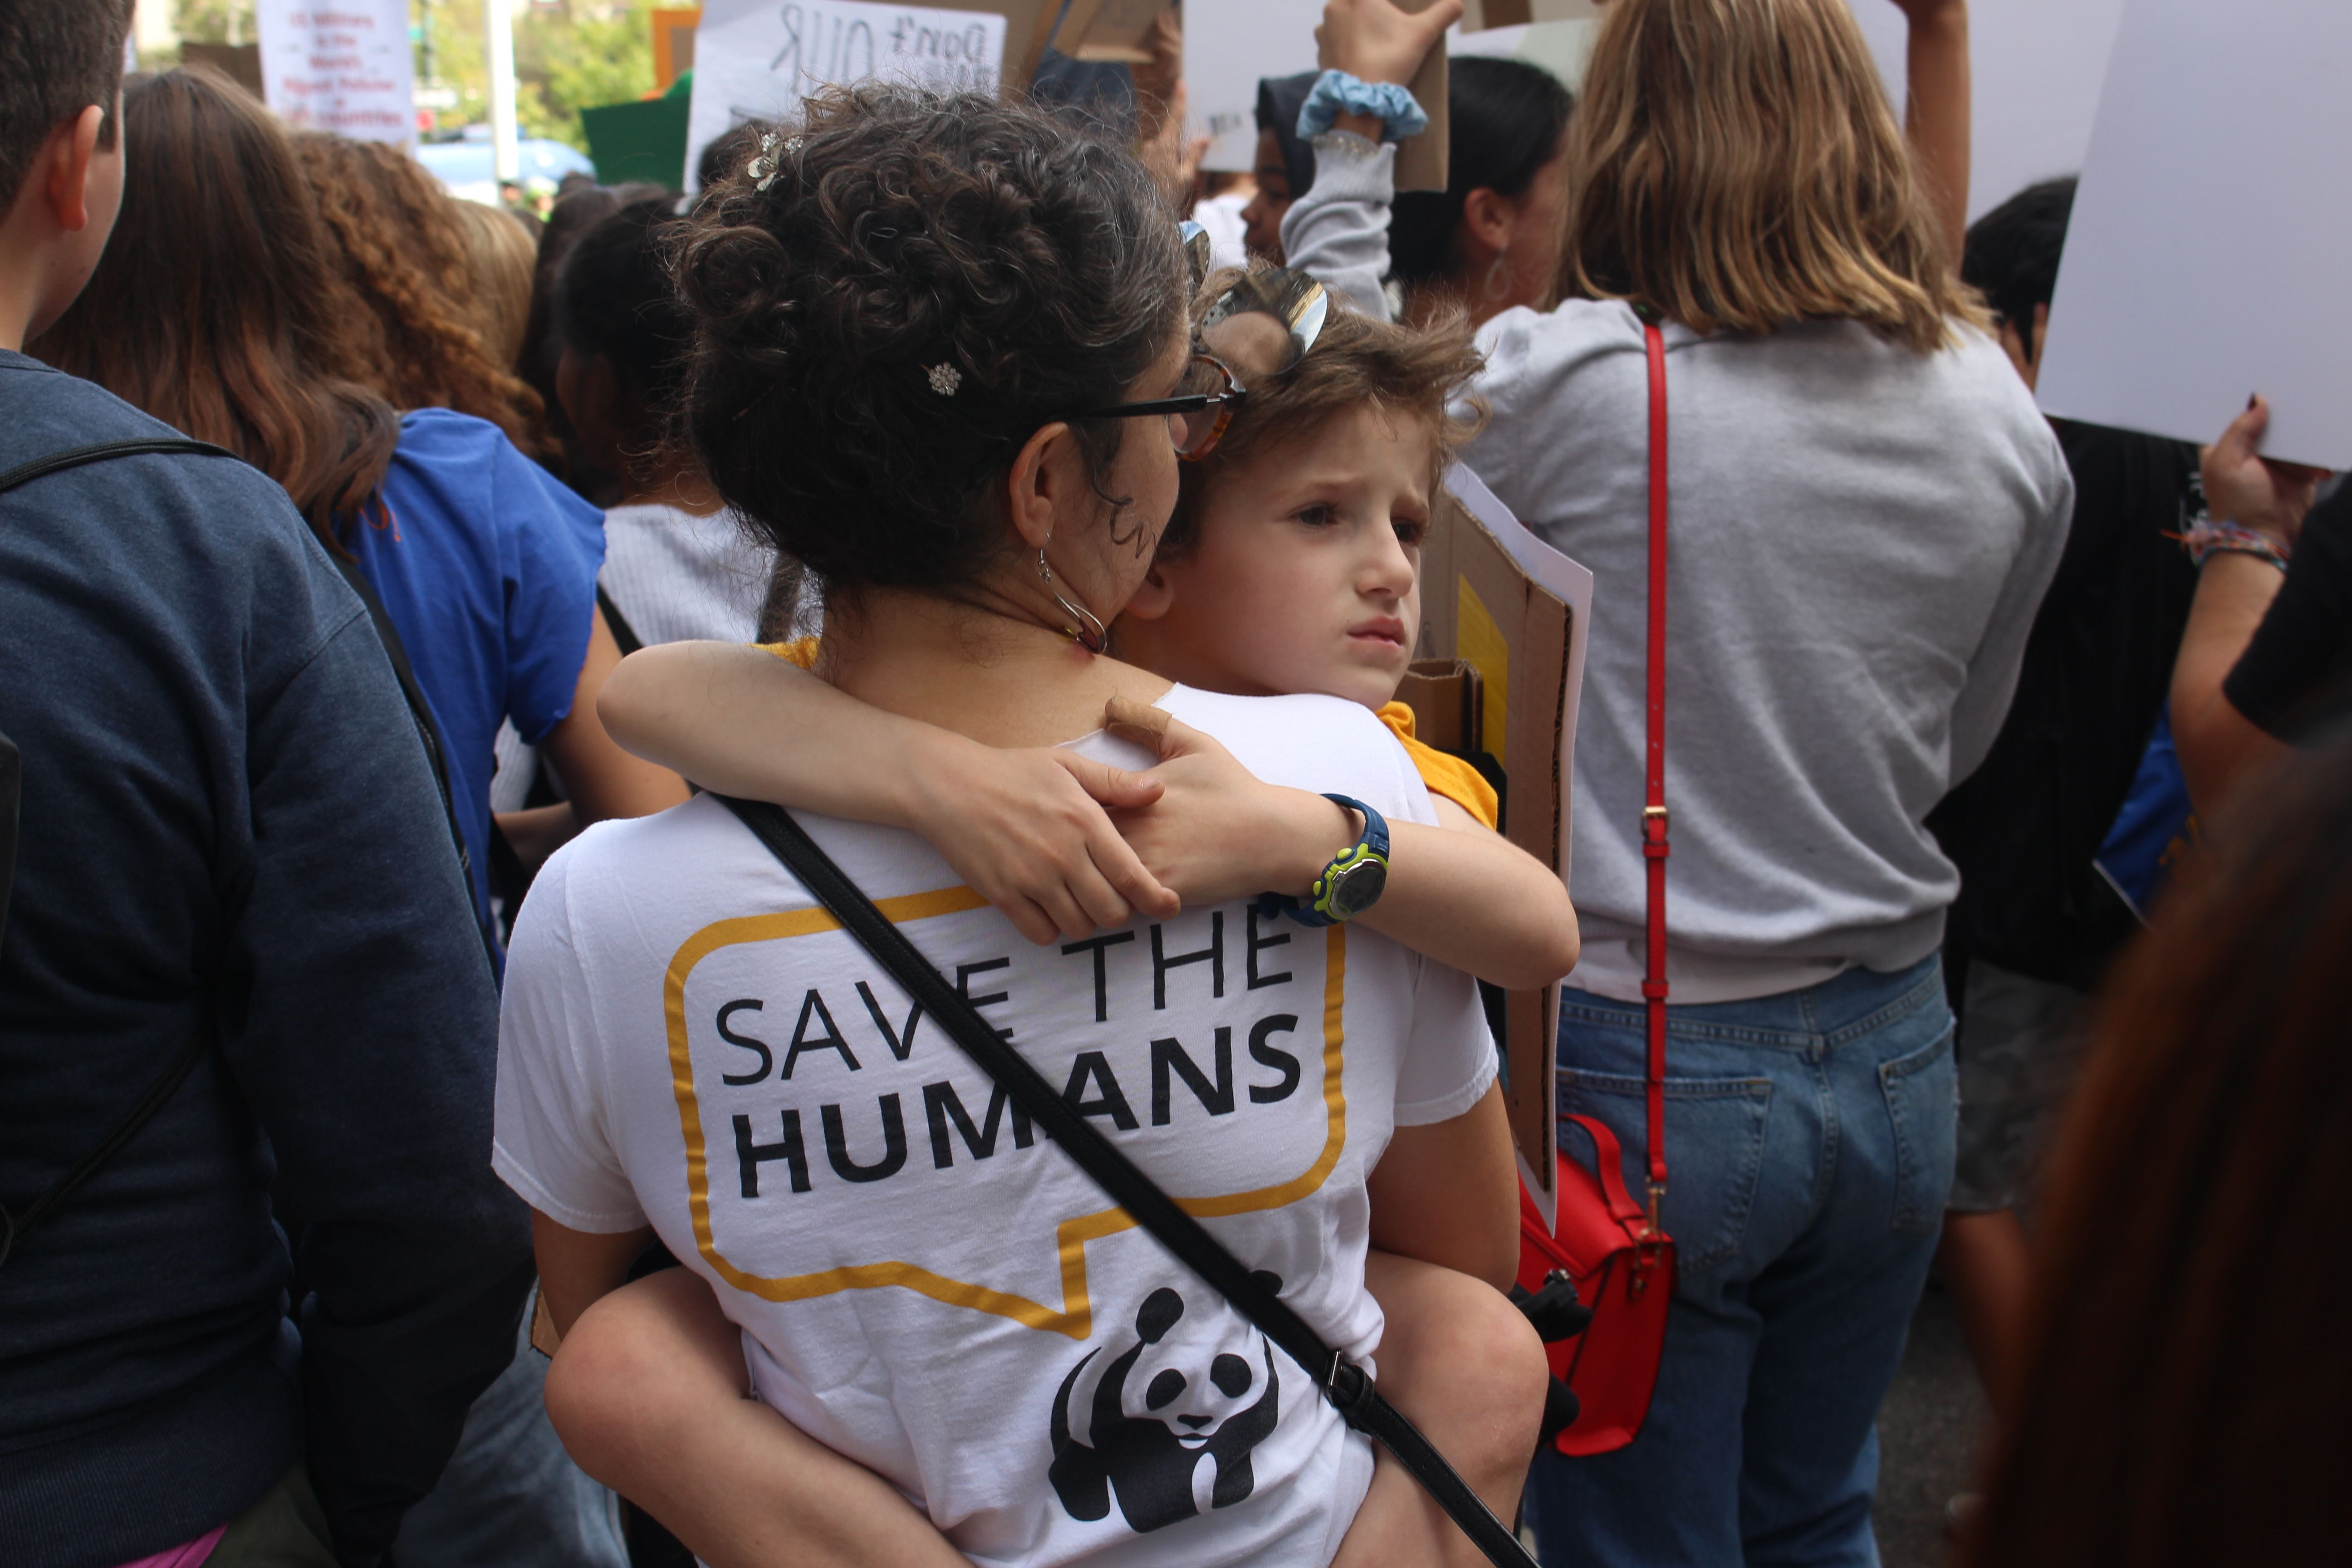 mother holding her child wearing save the humans shirt